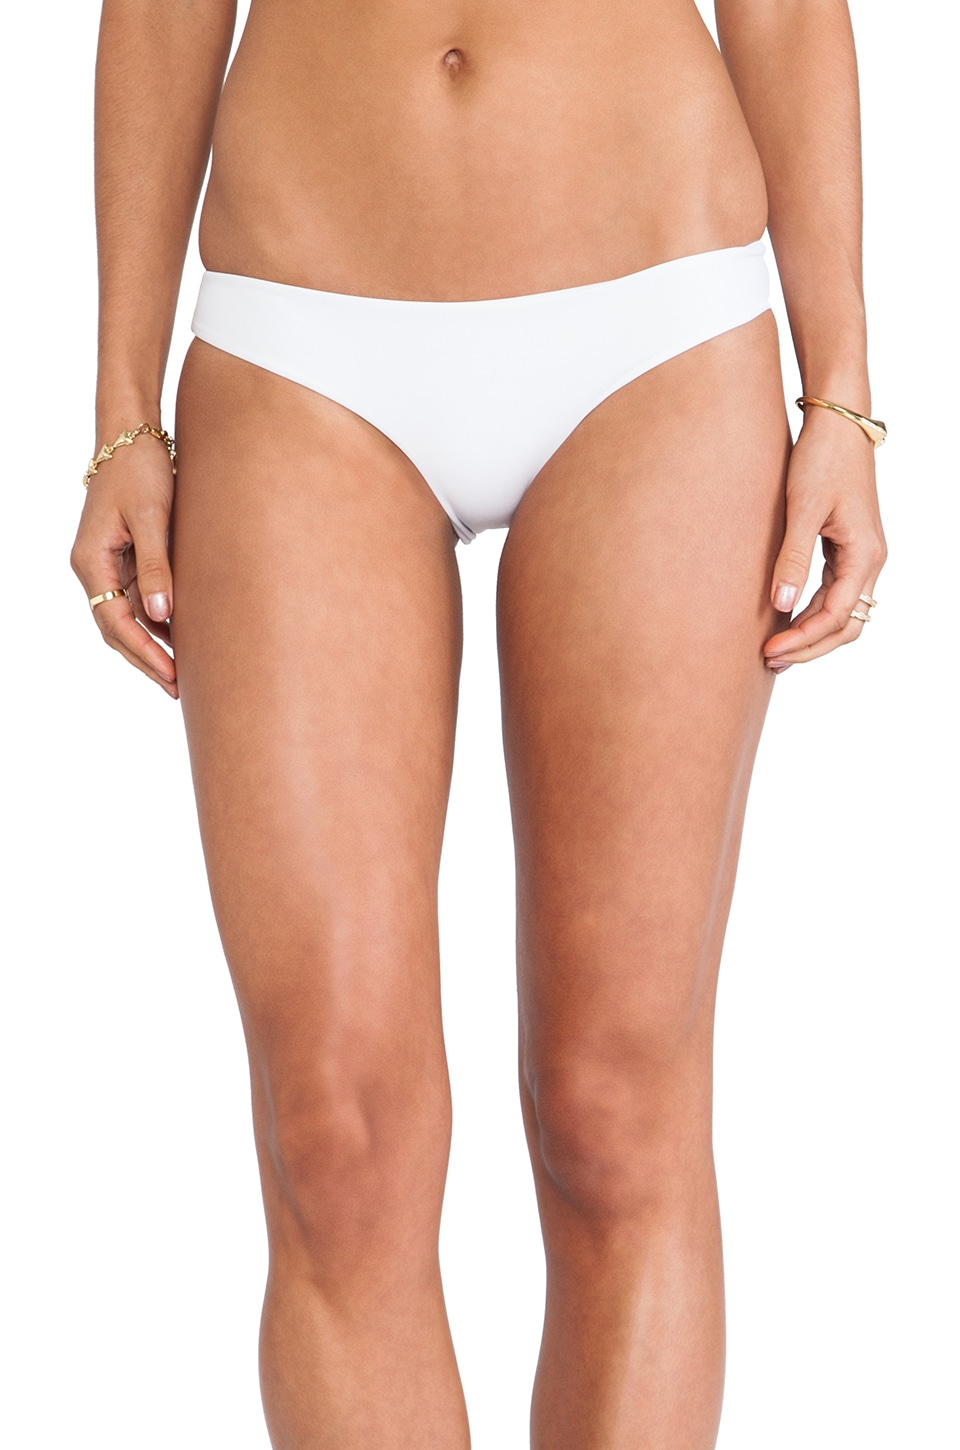 Issa de' mar Poema Bottom in White